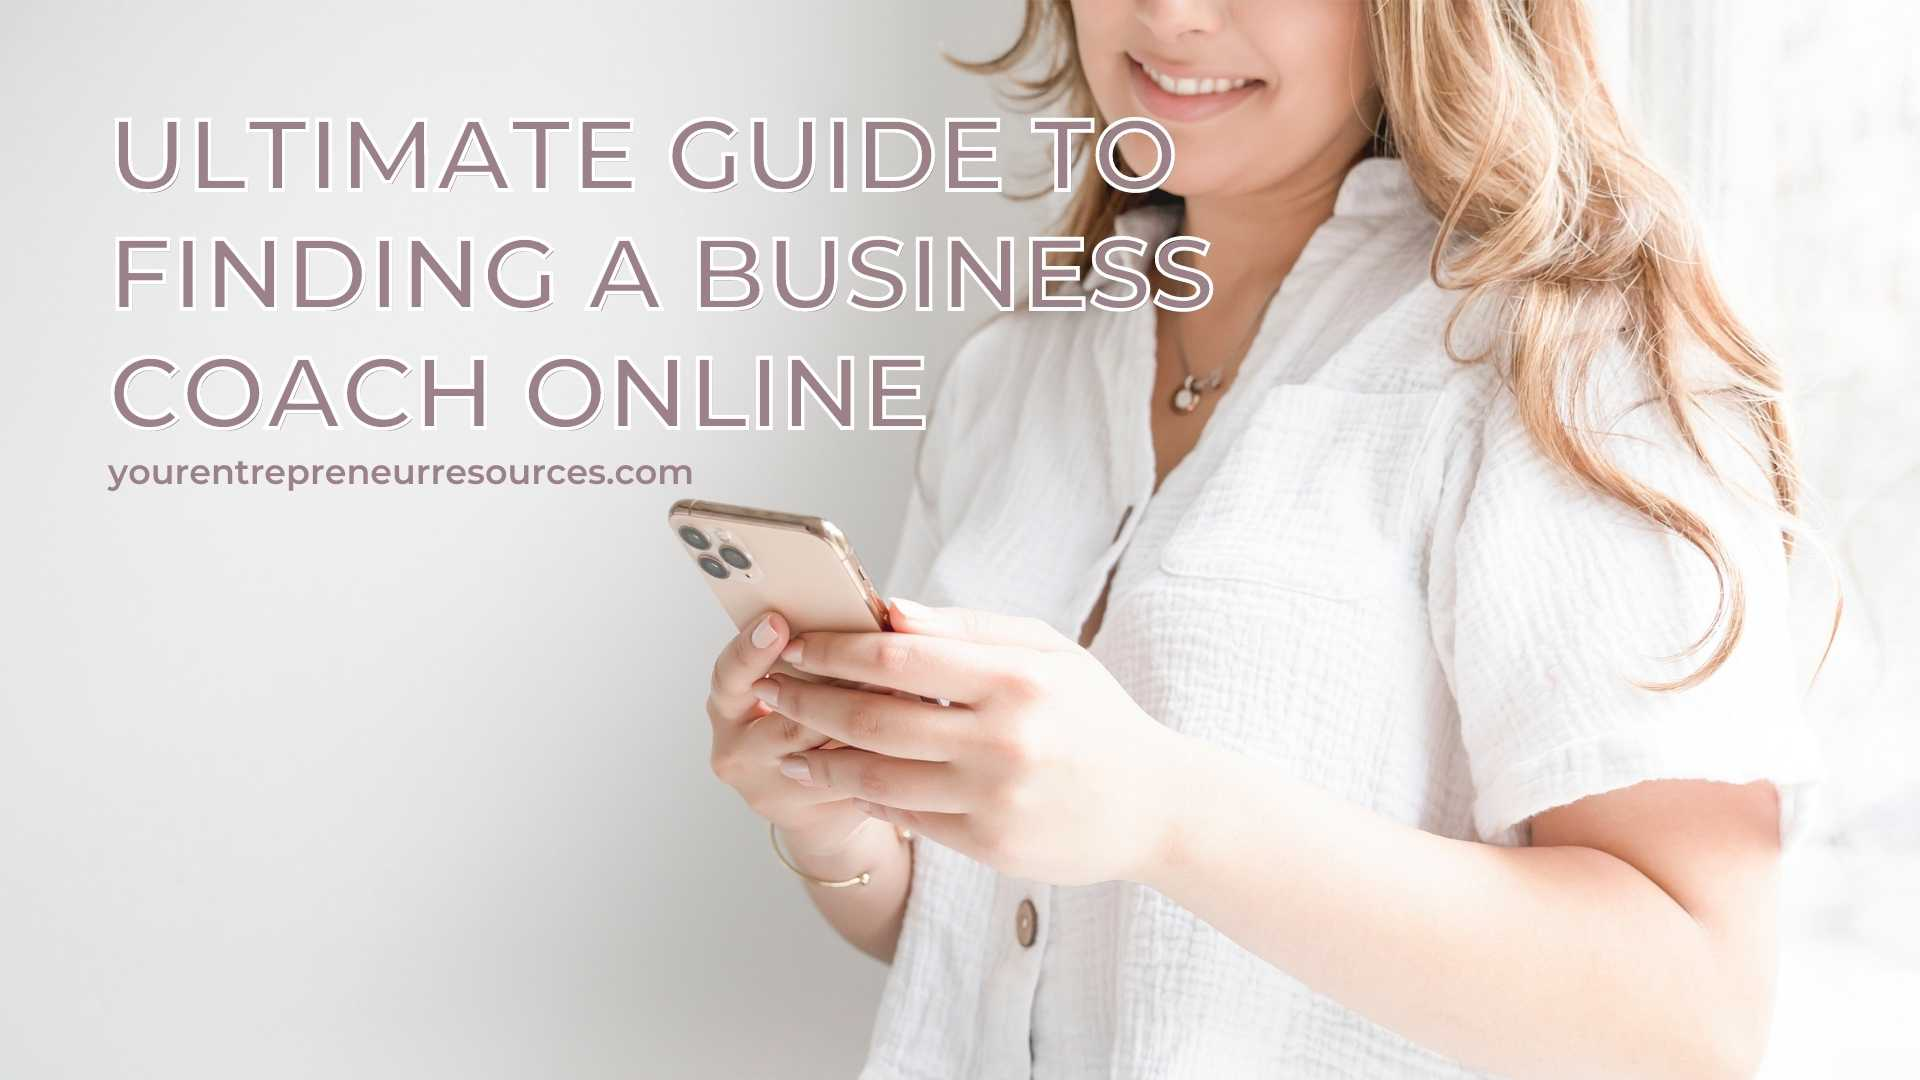 Ultimate Guide to Finding a Business Coach Online Does business coaching really work